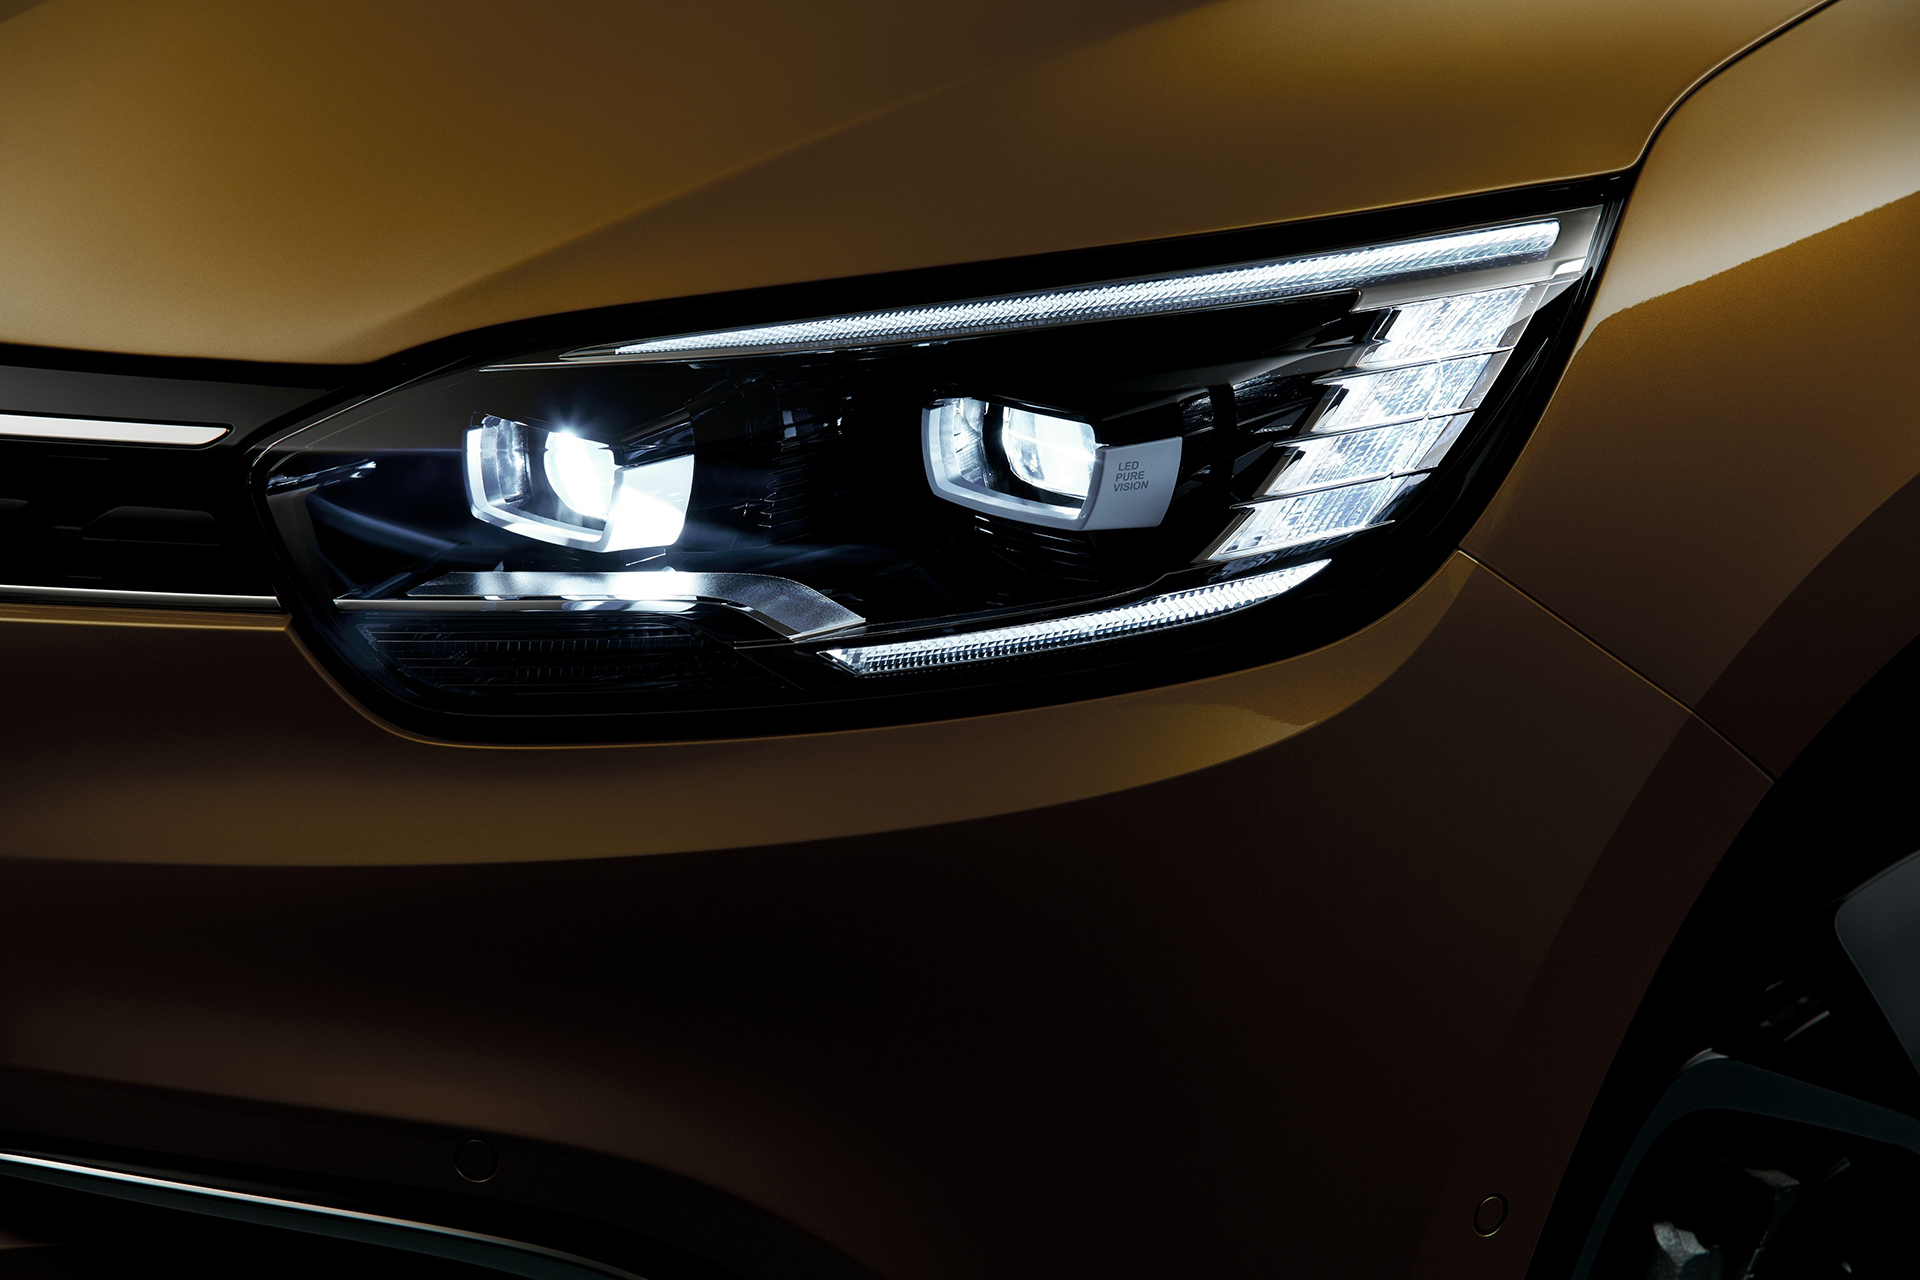 Renault Scenic - 2016 - optique avant / front light